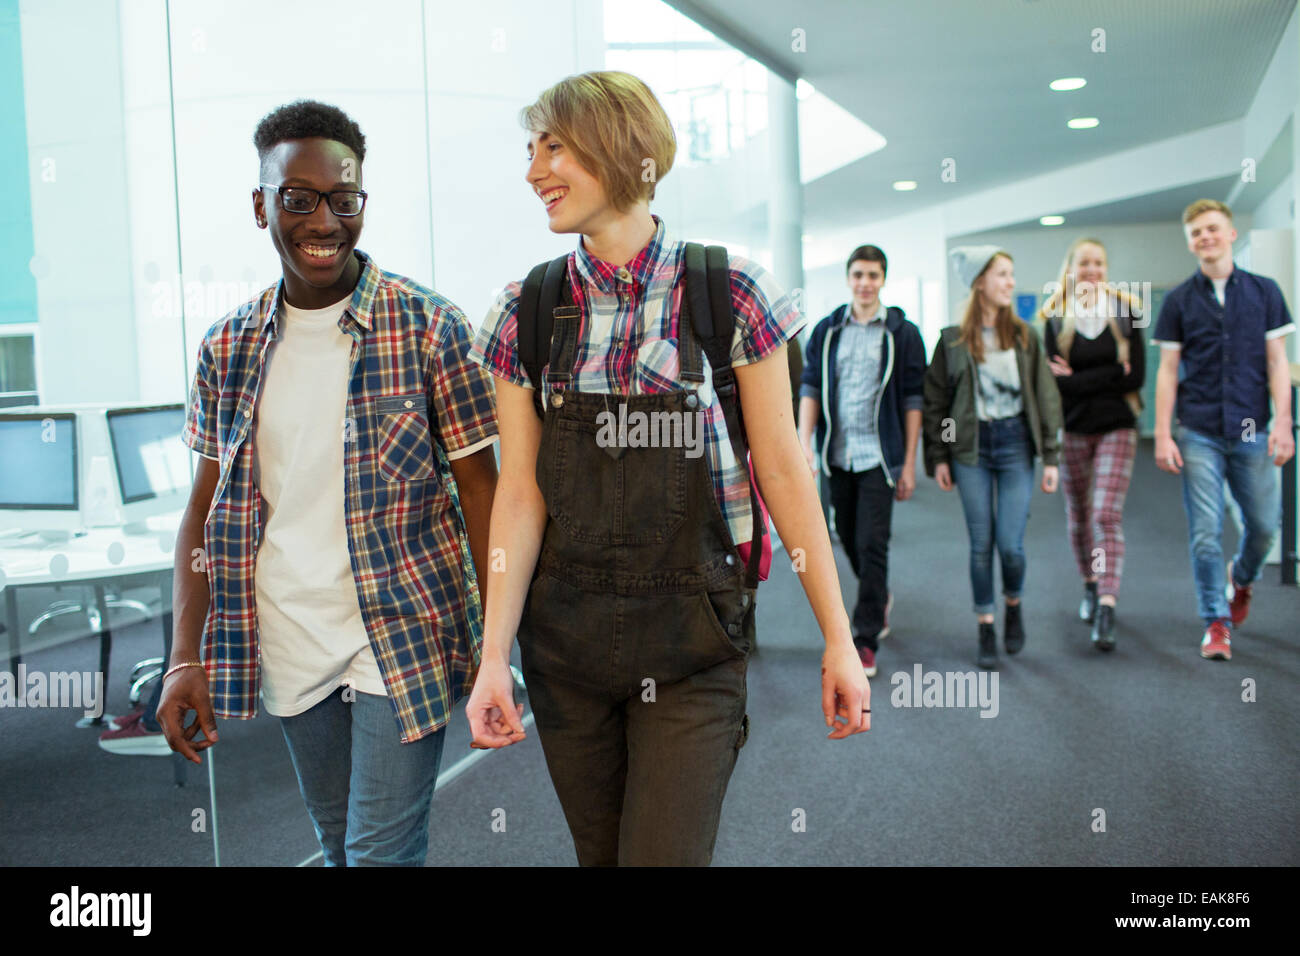 Group of students walking in corridor and smiling - Stock Image